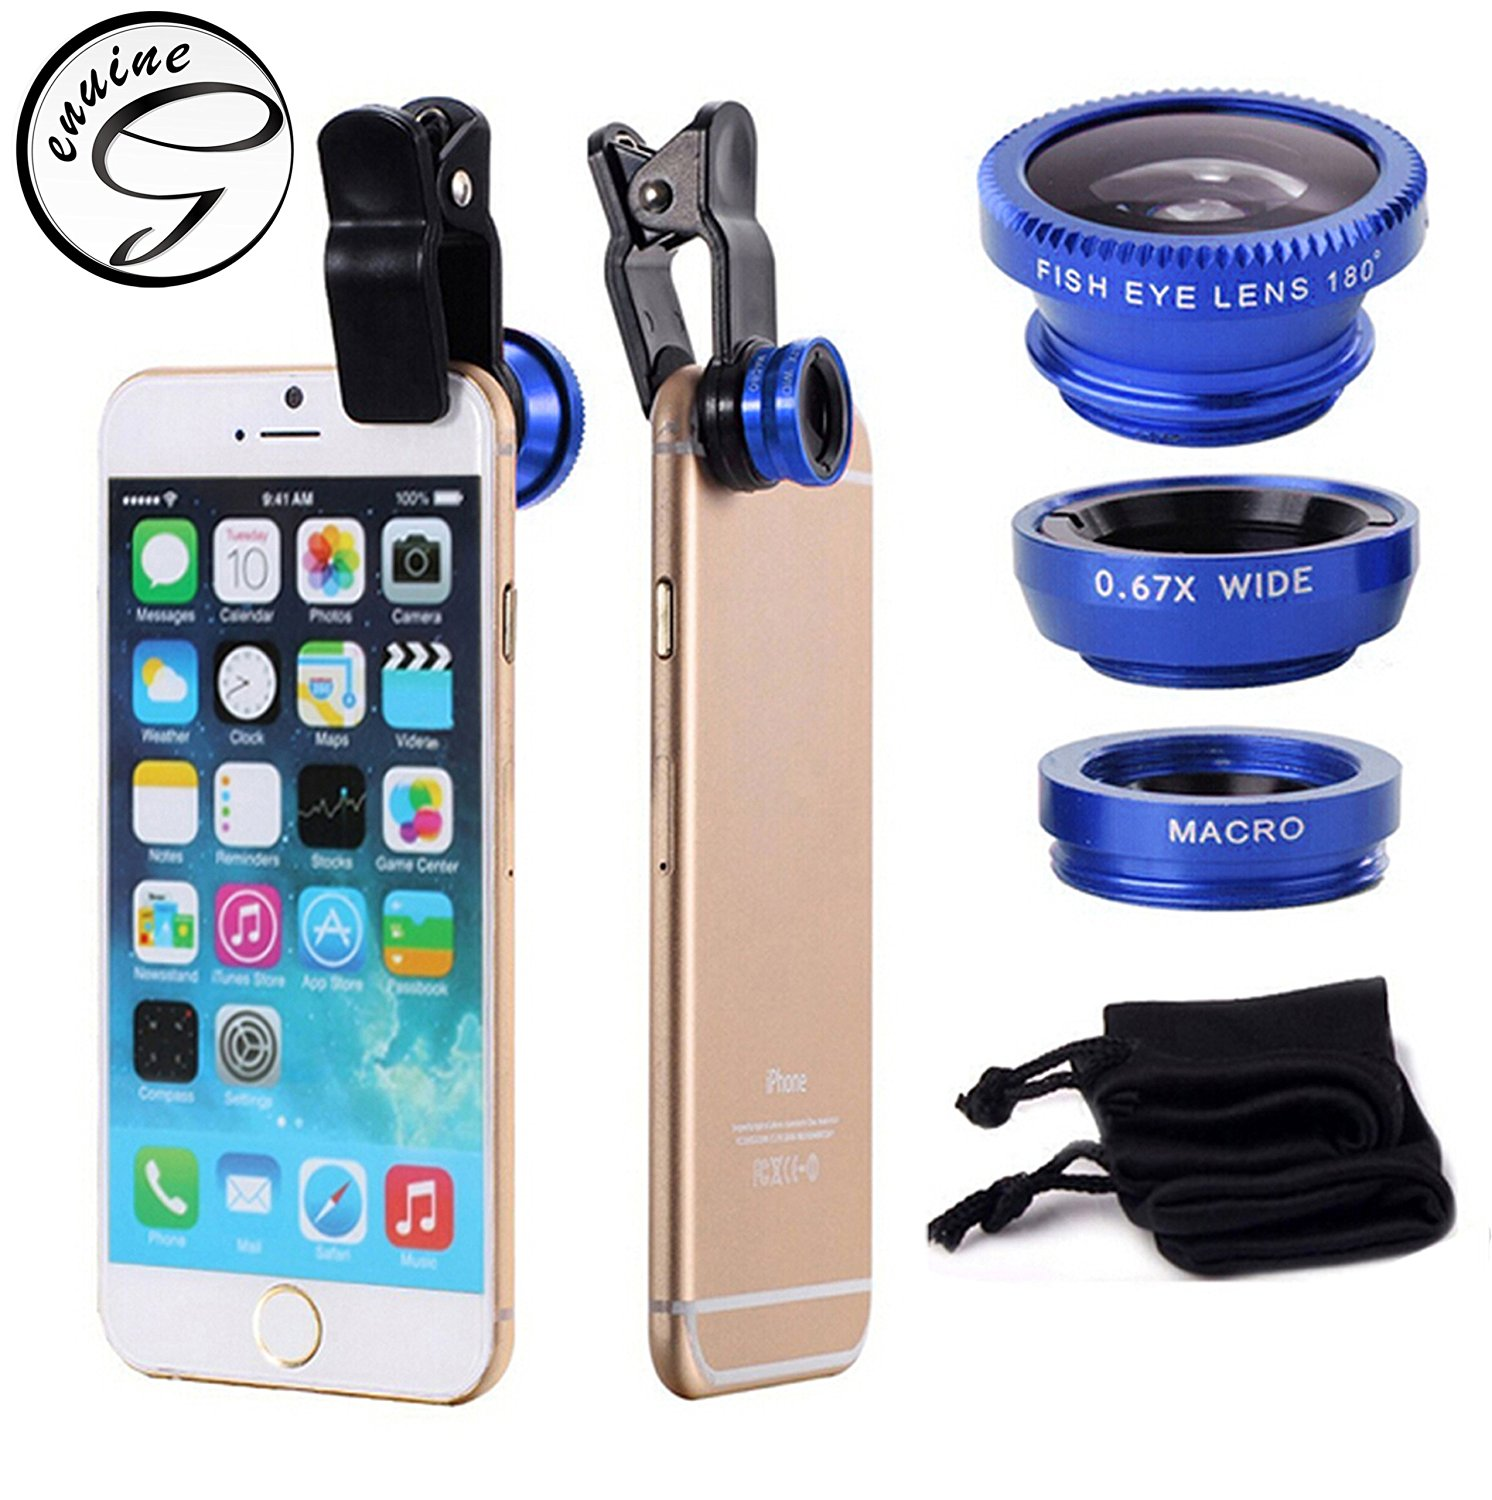 New Version Genuine Blue Universal Clip-on 180 degree 3 in 1 Fisheye+Wide Angle+Macro Phone Camera Lens Kit for iPhone 5/5S/4/4S/6/6 Plus Samsung Galaxy S5/S4/S3 Note 4/3/2 G386 HTC Blackberry Bold Touch, Sony Xperia, Motorola Droid